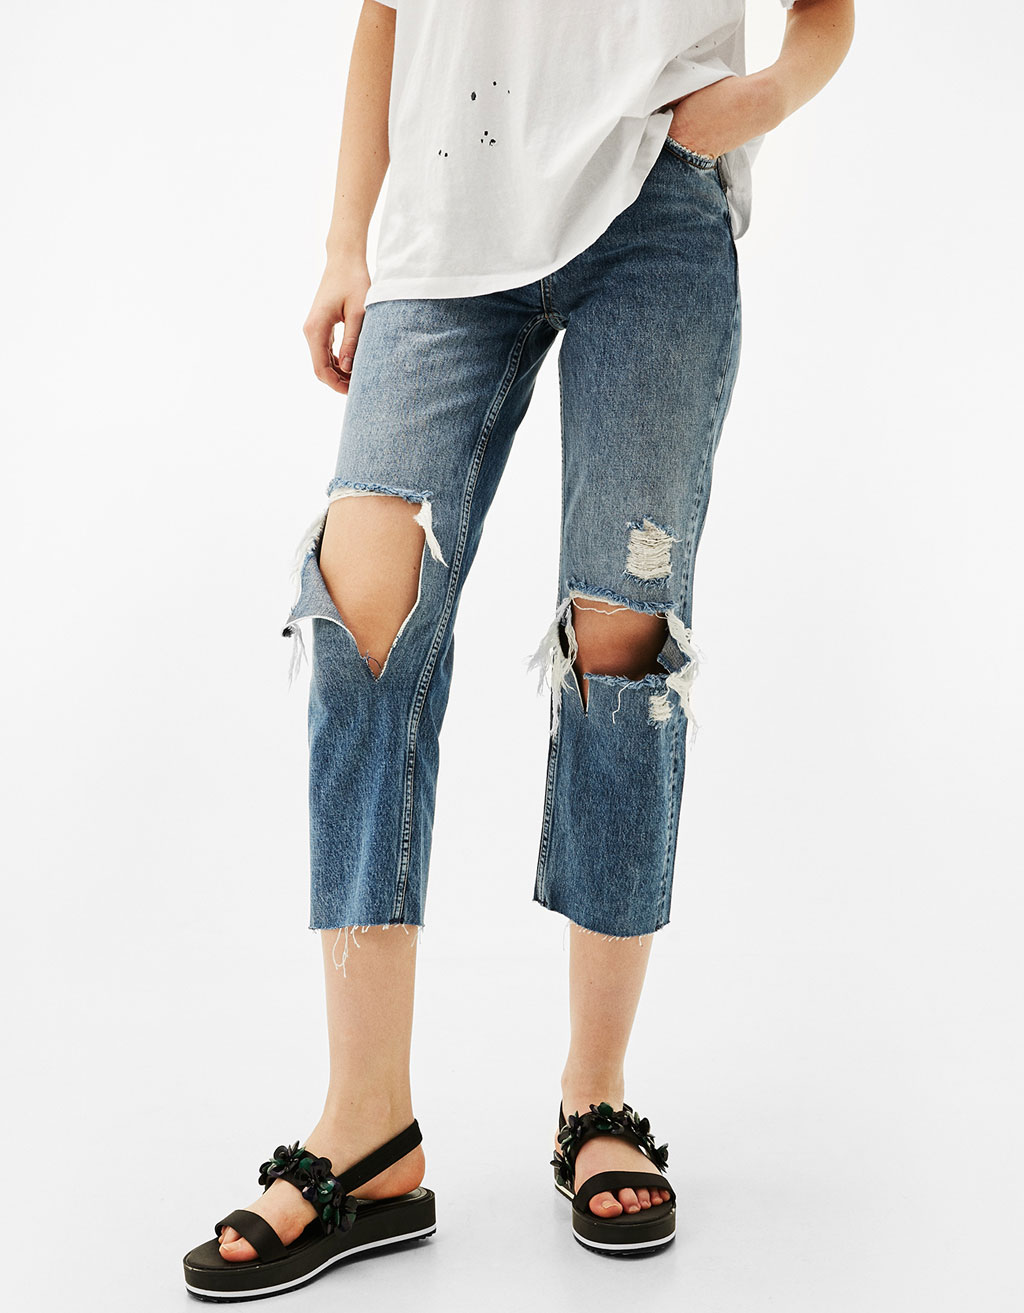 Straight Fit jeans with rips